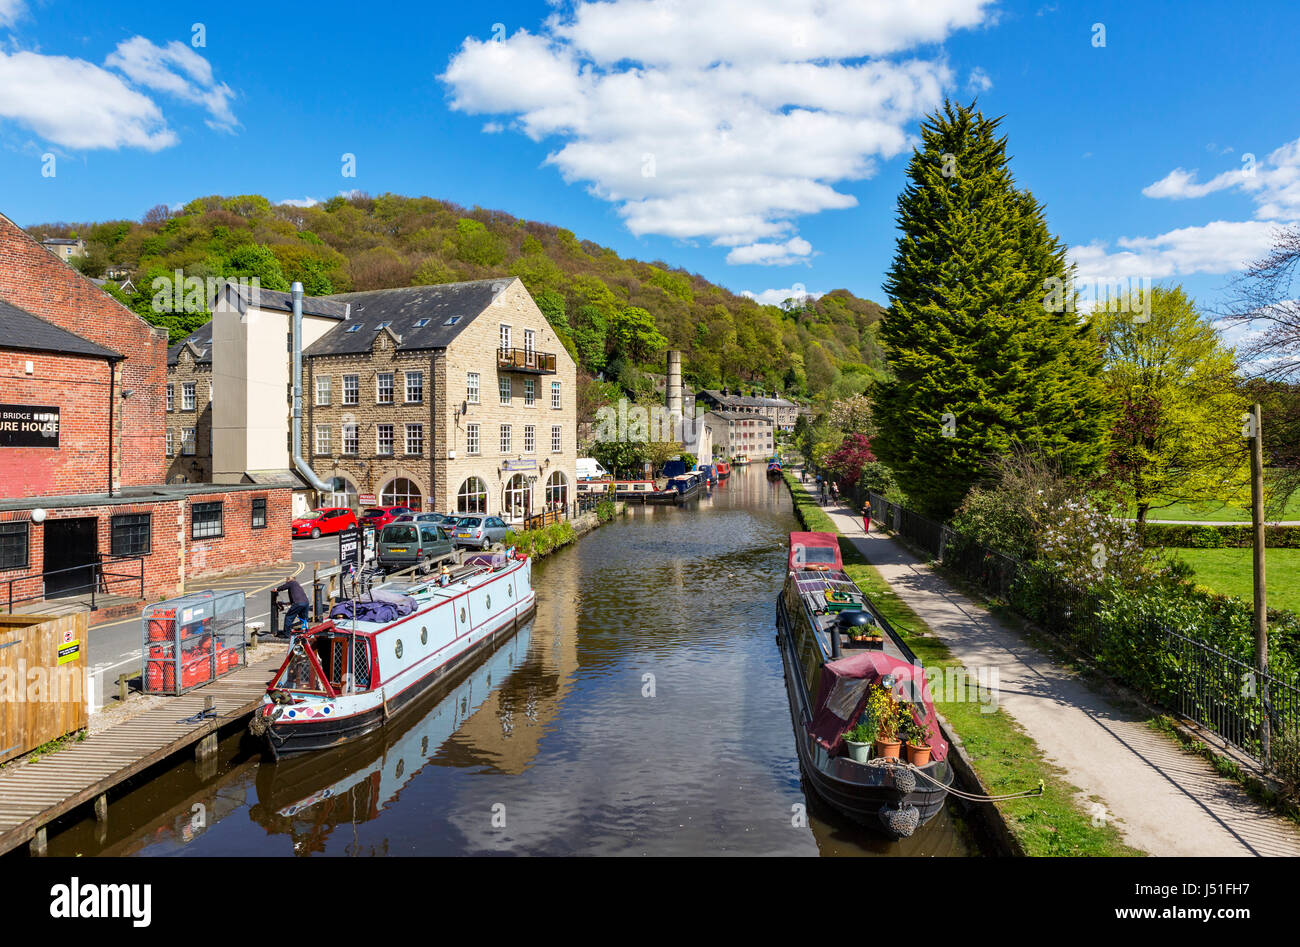 Narrowboats on the Rochdale Canal, Hebden Bridge, West Yorkshire, England, UK. - Stock Image